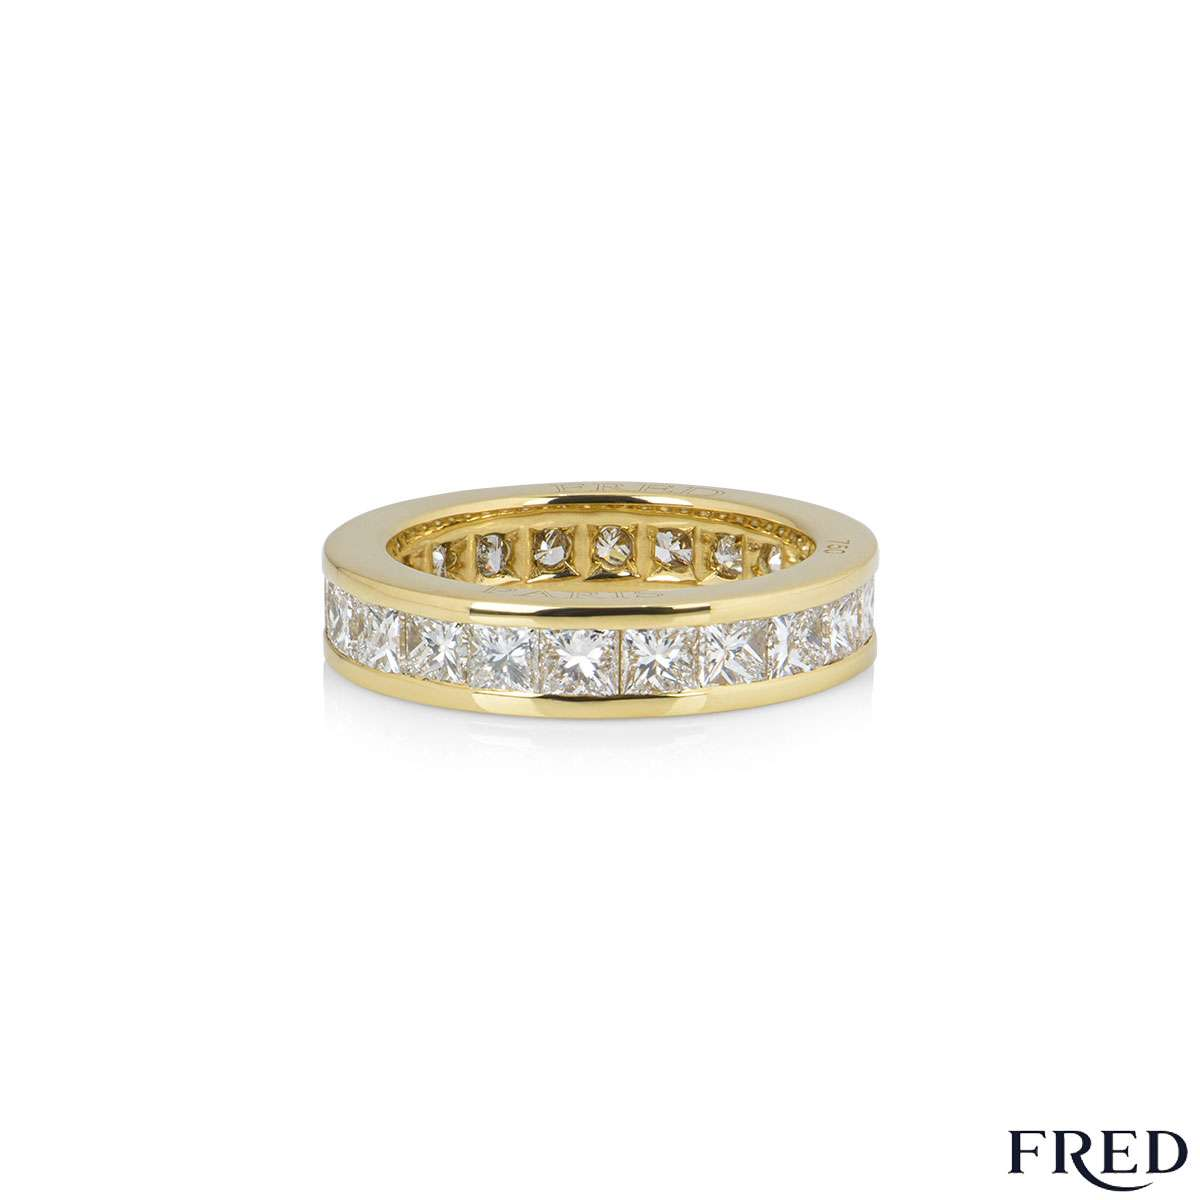 Fred Yellow Gold Diamond Eternity Ring